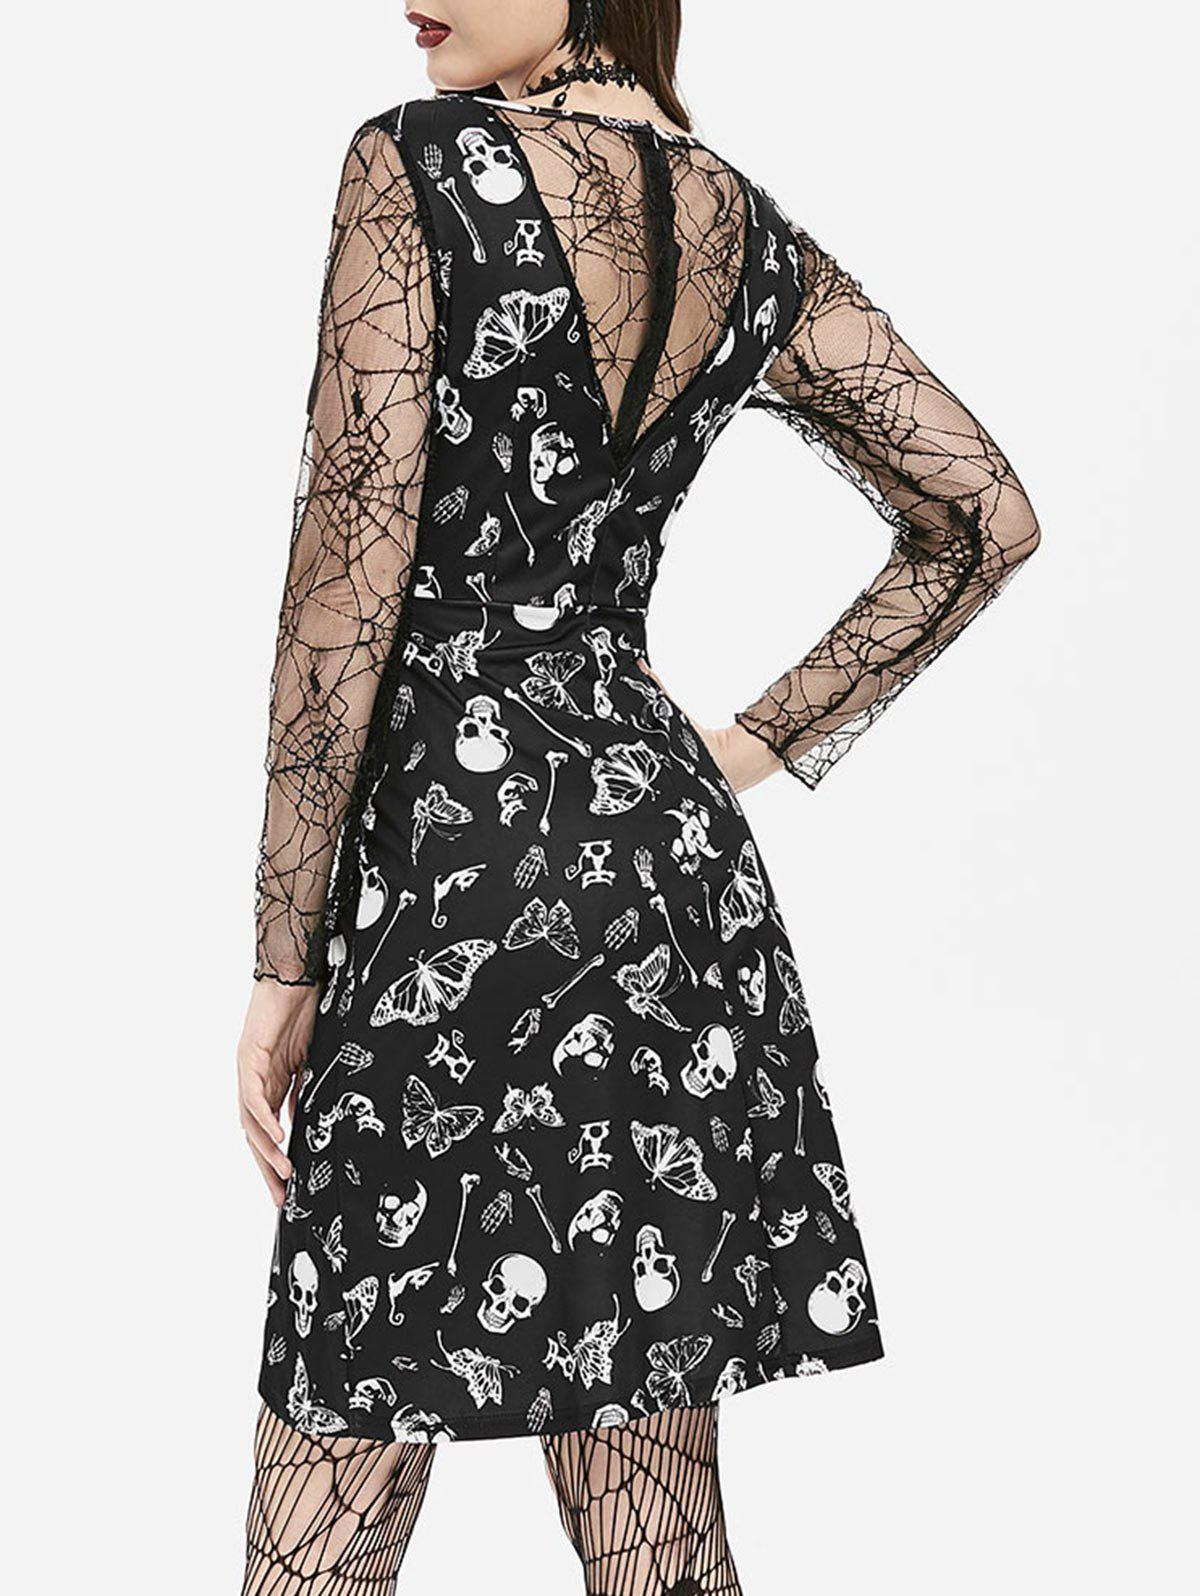 Cobweb Lace Skull Moth Mini Halloween Dress фото